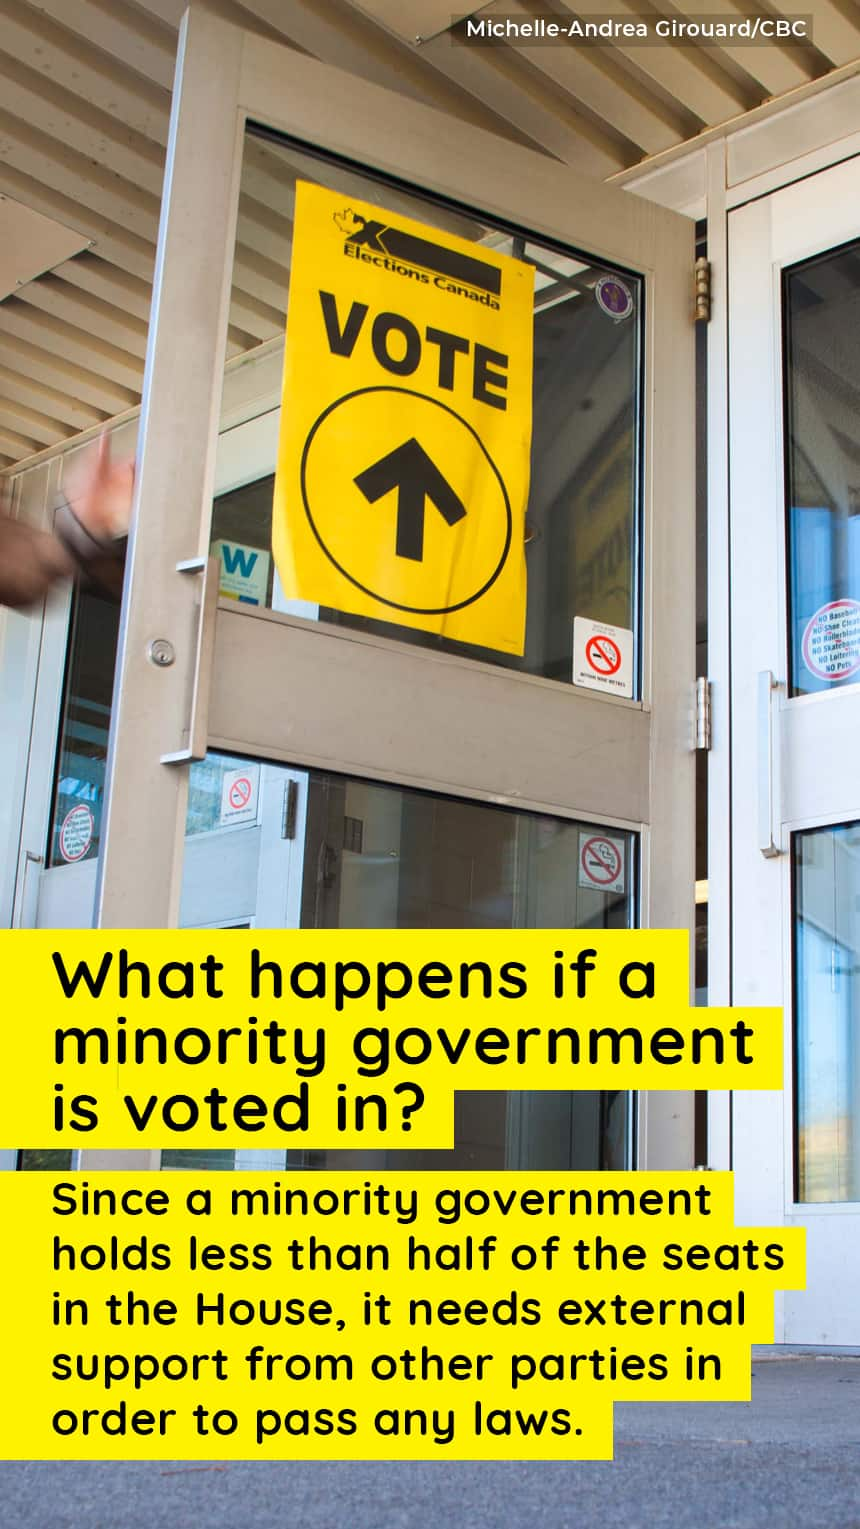 An image of a voter leaving a polling station with text that says, What happens if a minority government is voted in? Since a minority government holds less than half of the seats in the House, it needs external support from other parties in order to pass any laws.